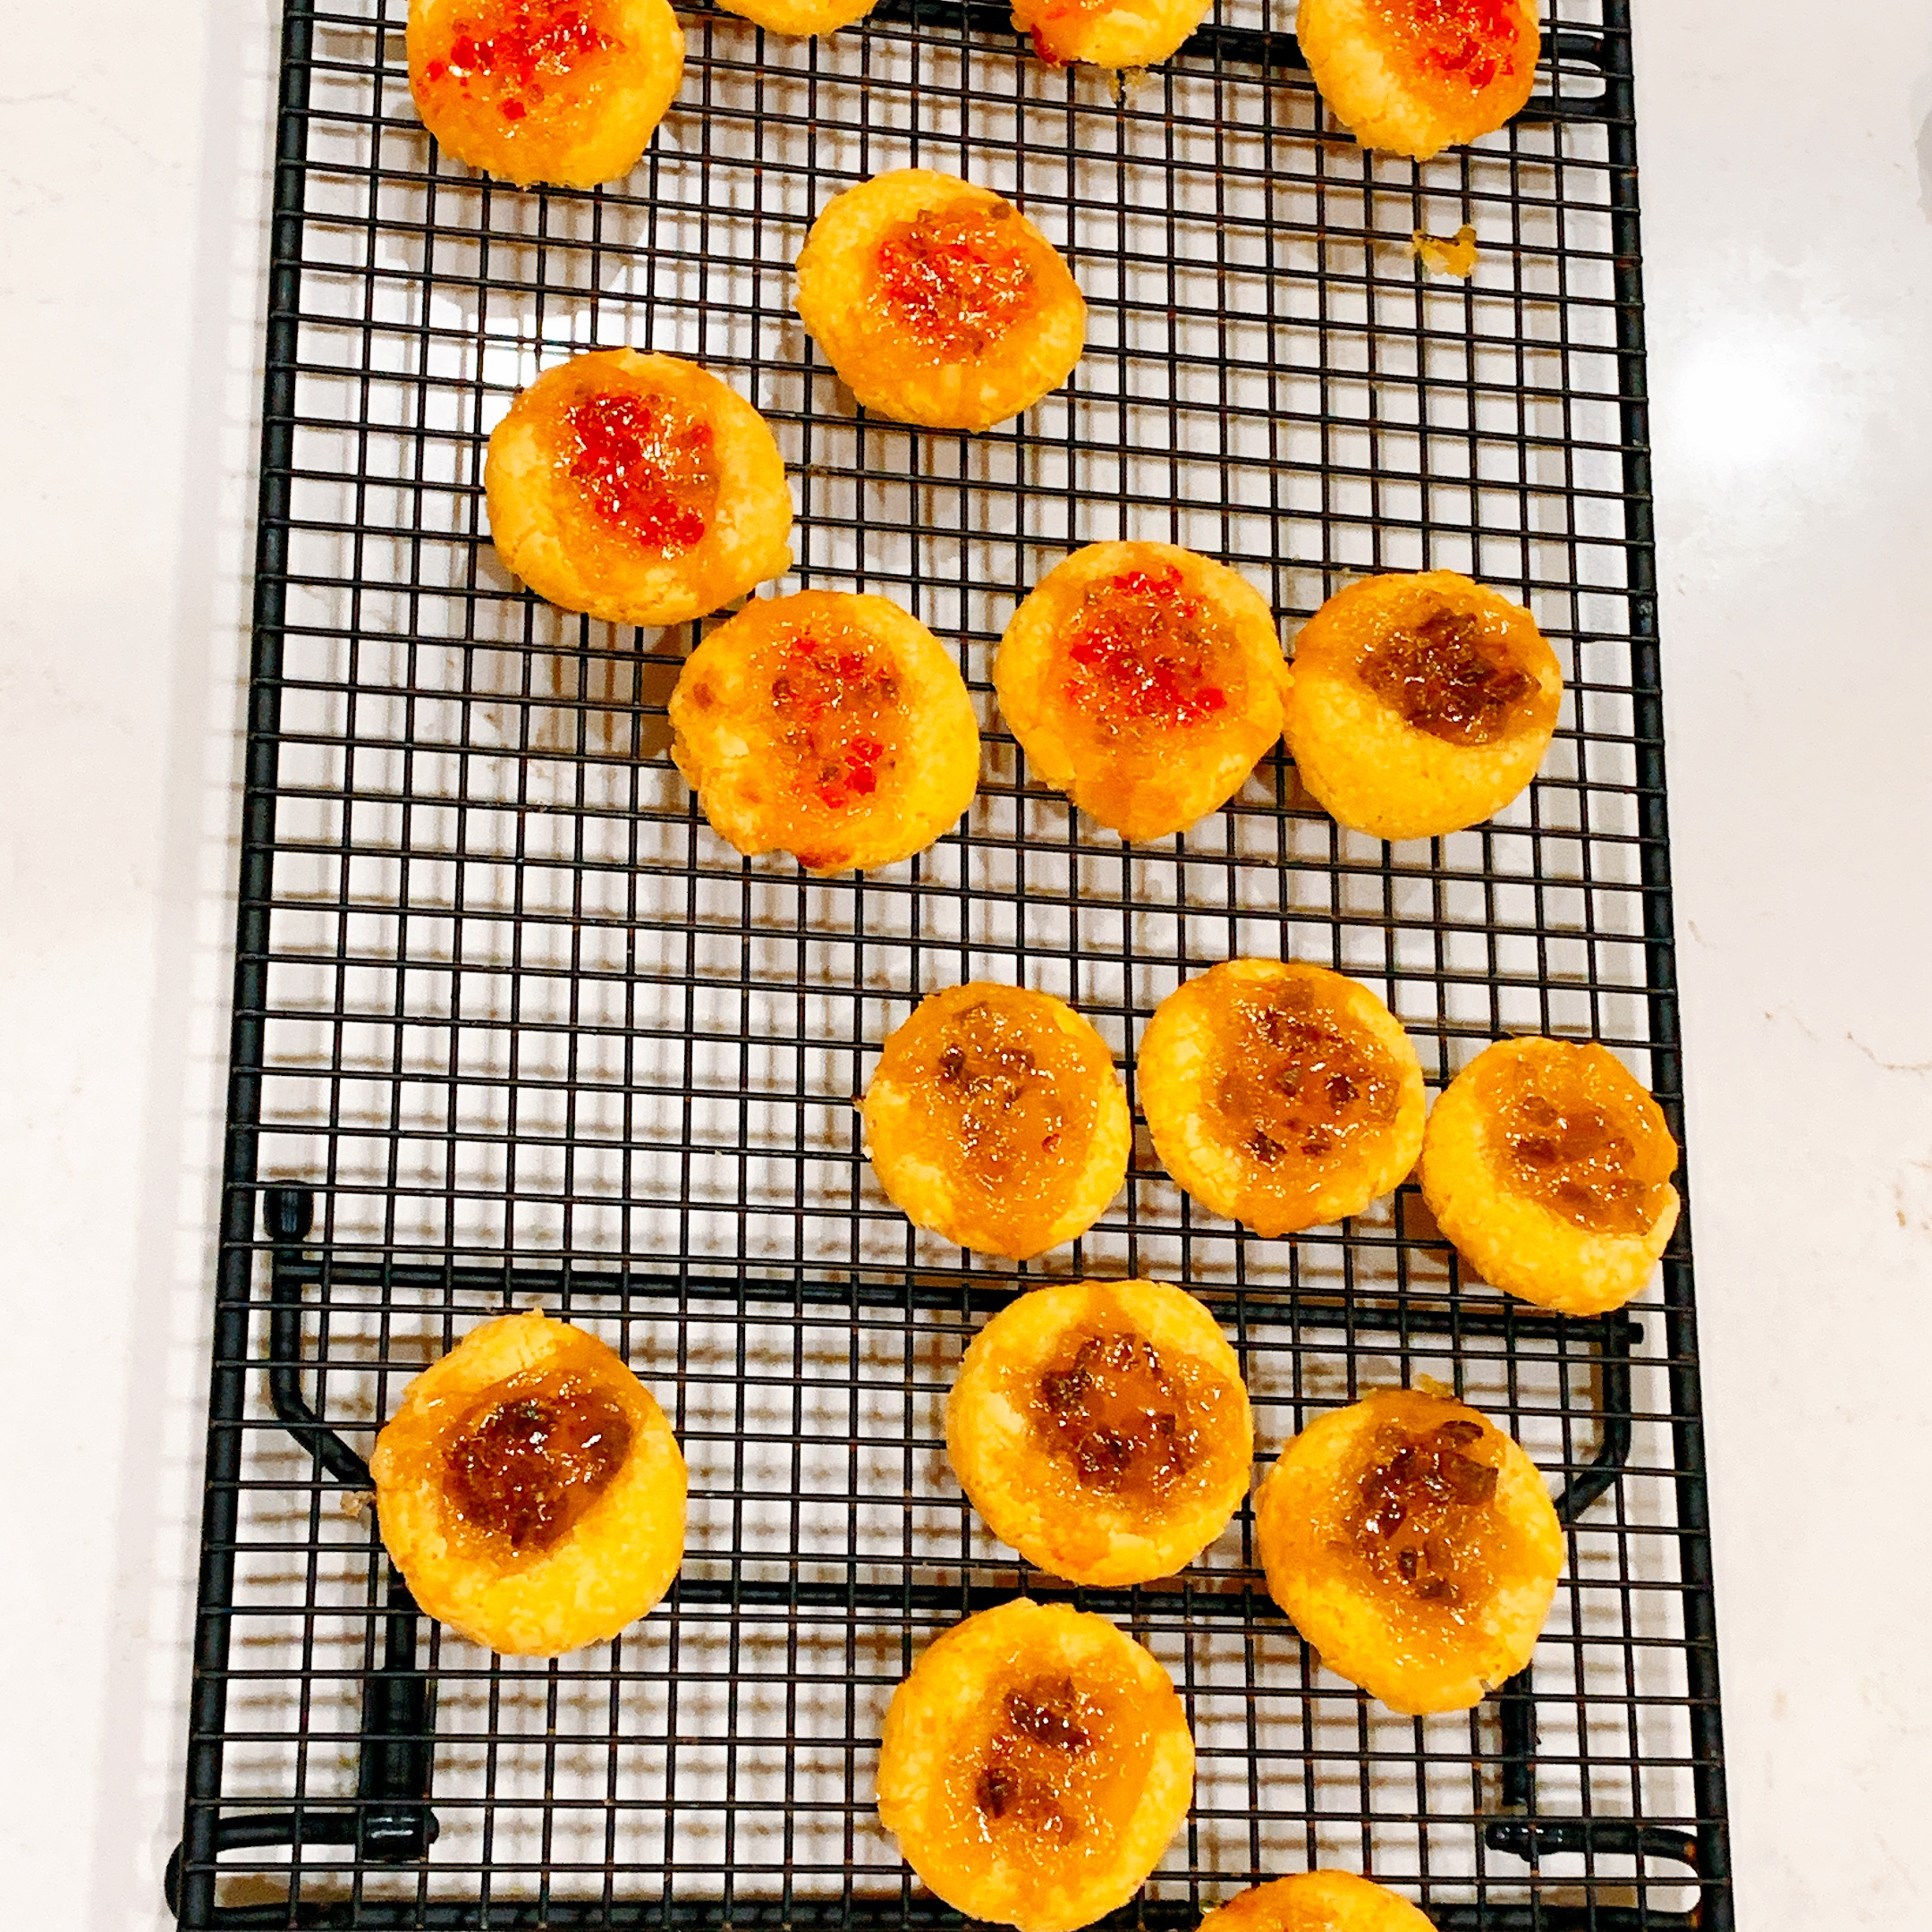 Cheesy Thumbprint Appetizers with Hot Pepper Jelly